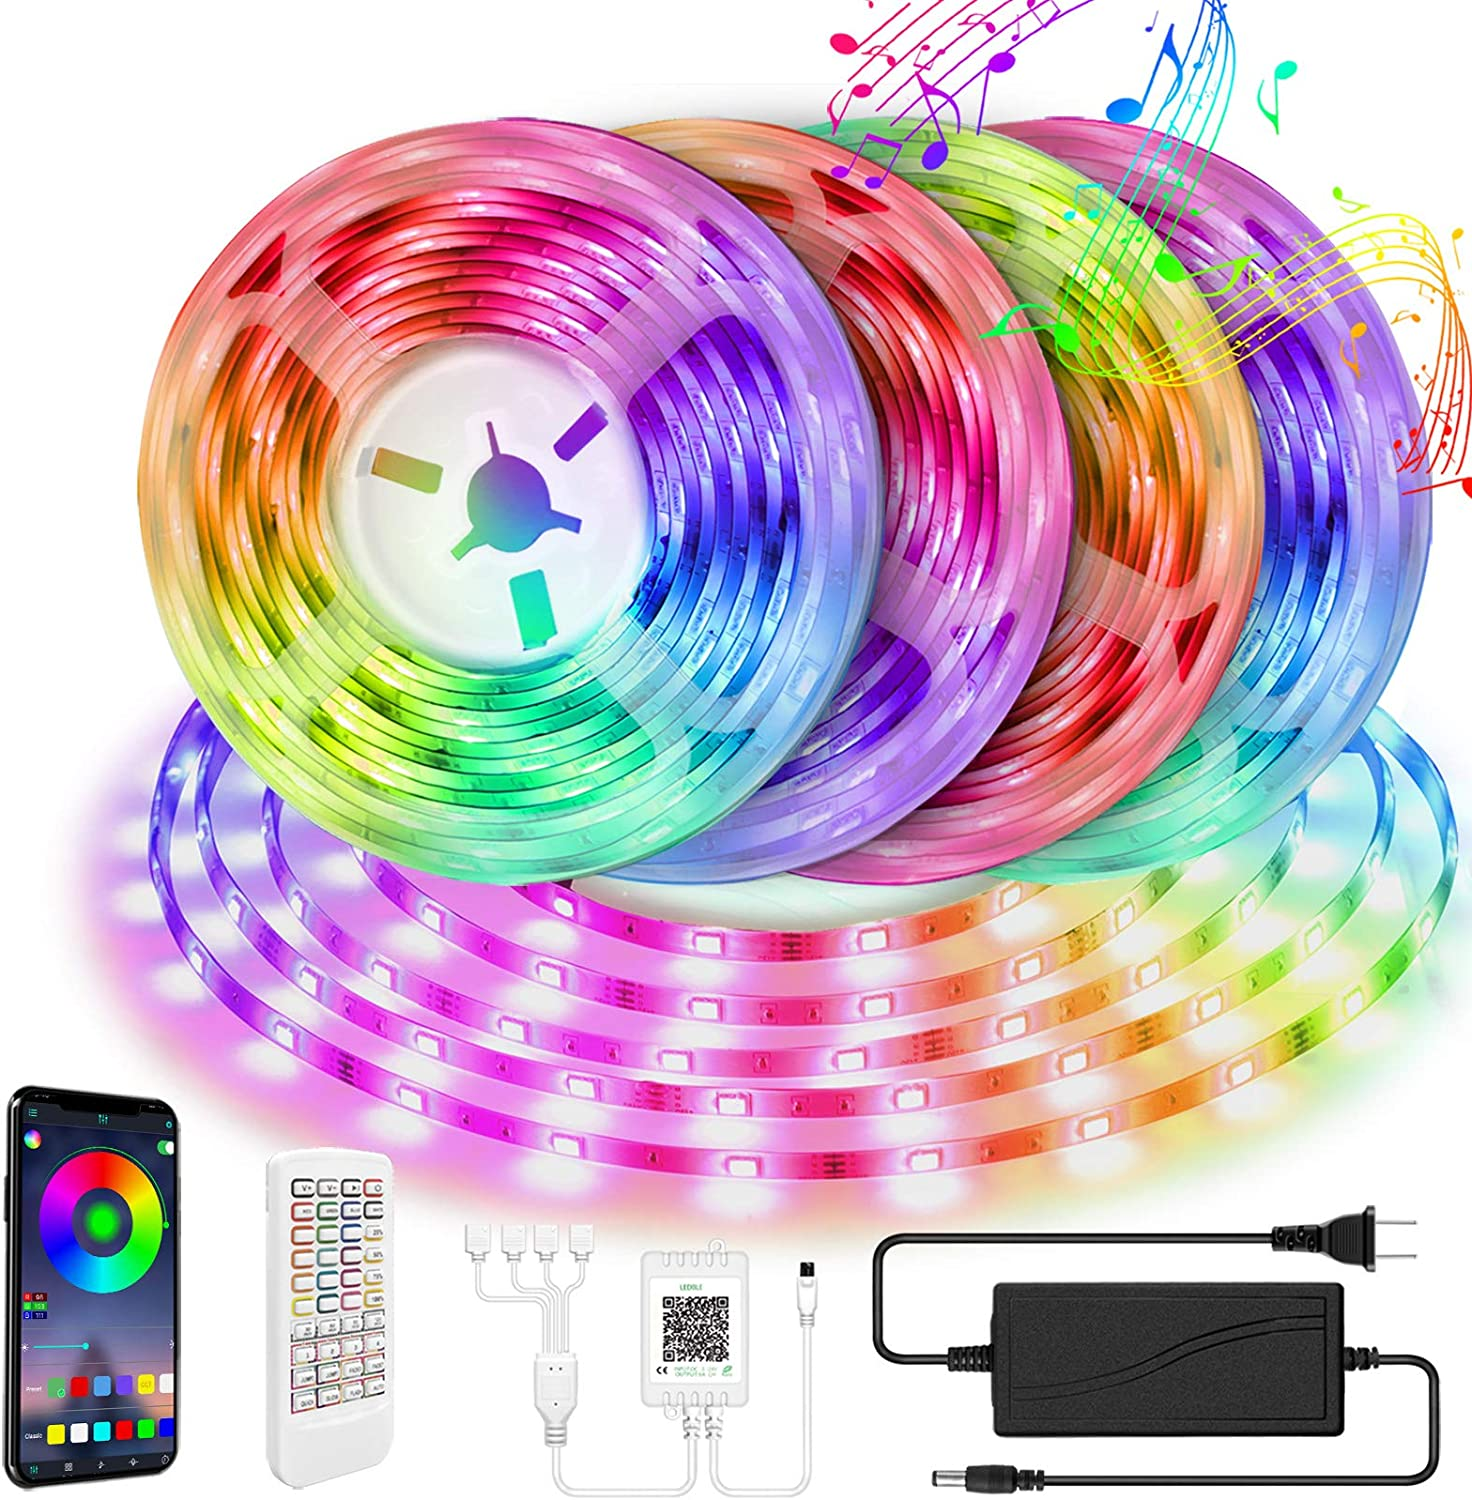 LED Strip Lights,65.6ft 4X16.4ft MOFUT Smart Led Lights 5050 RGB Led Light Strip Color Changing Led Strips with Bluetooth Controller Sync to Music Apply for TV Bedroom,Kitchen,Party,Bar and Home Decor